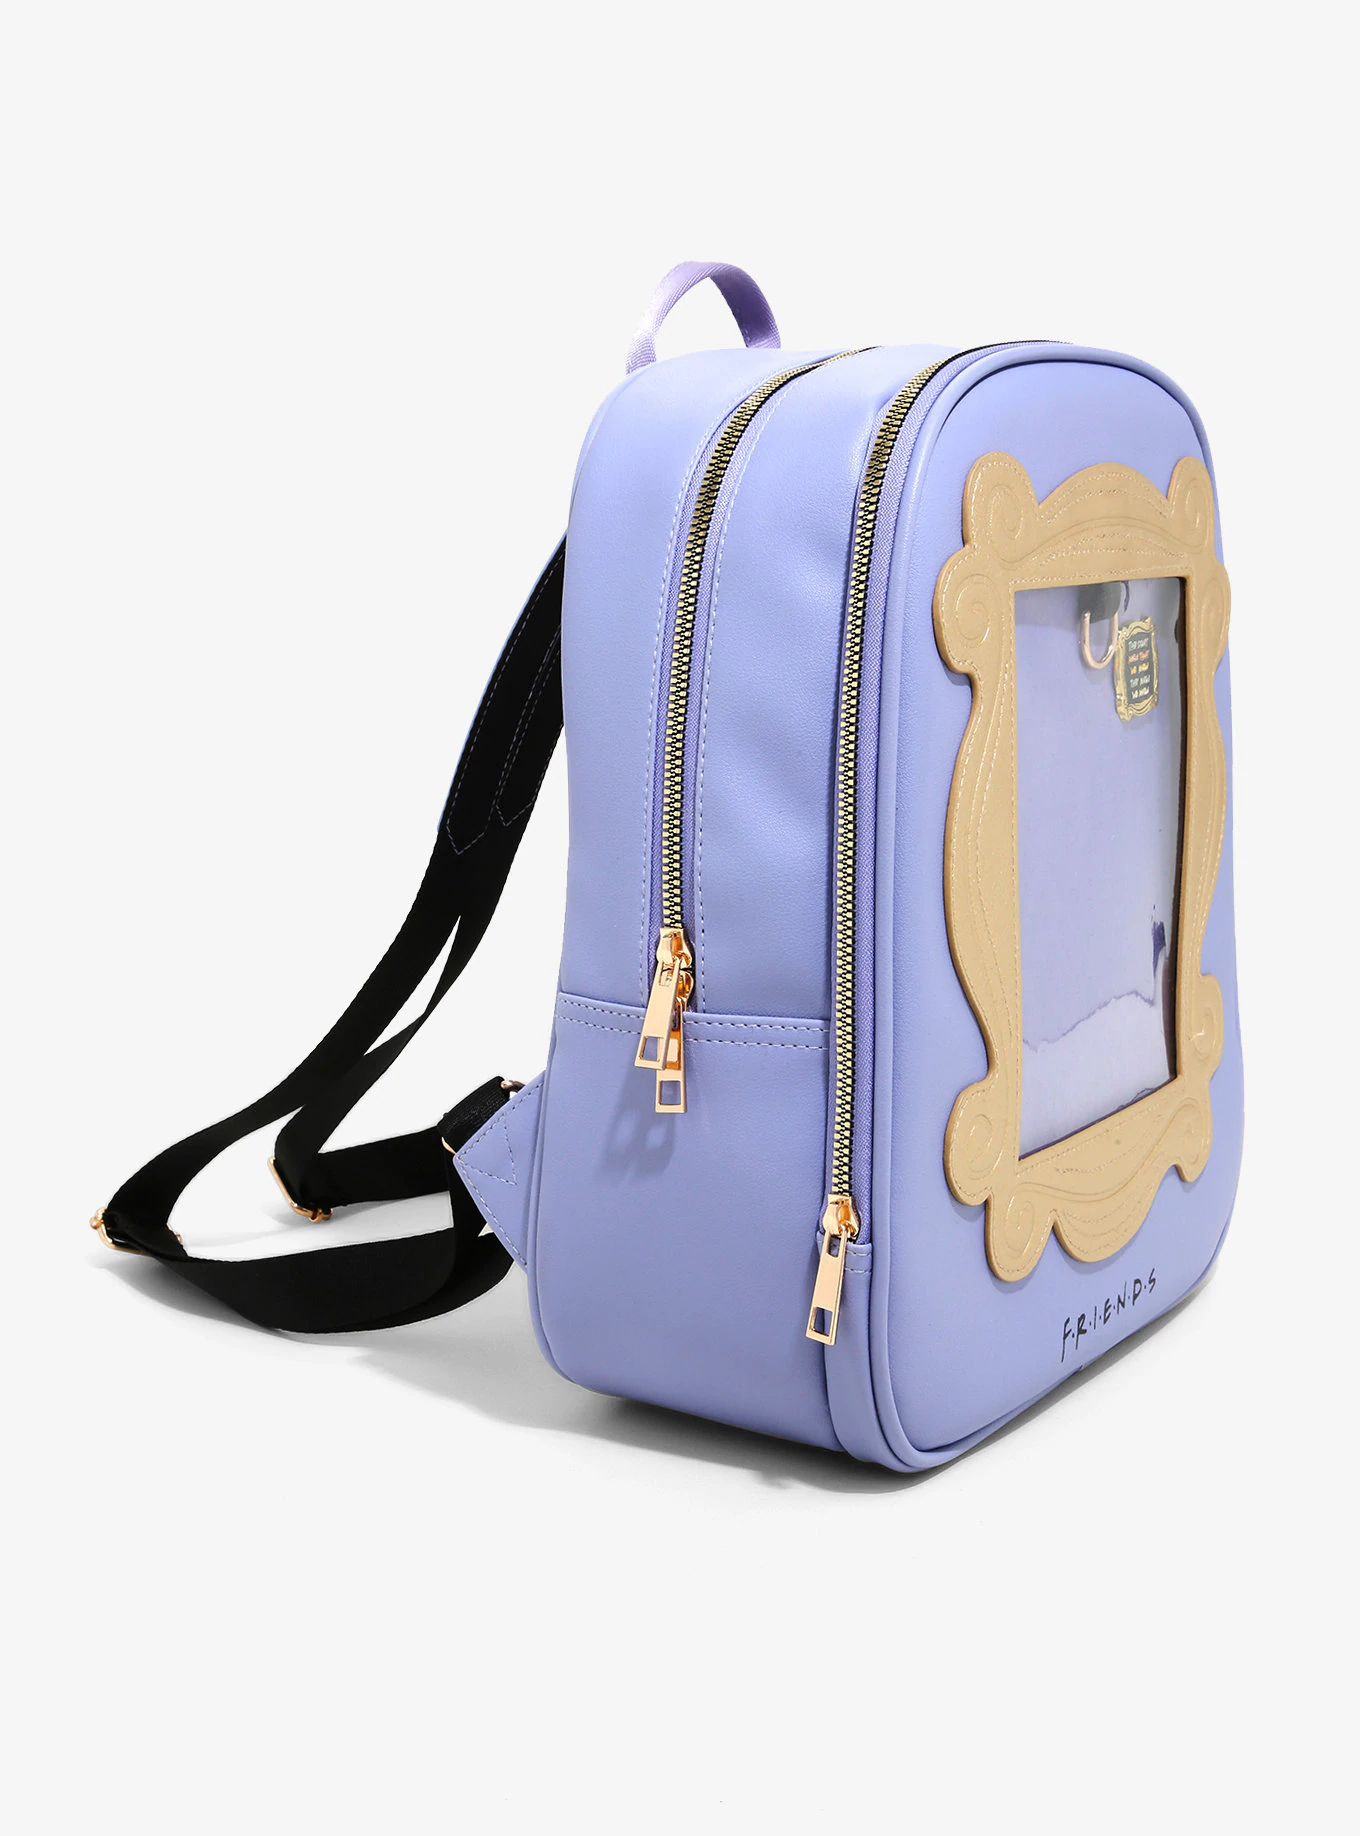 Cute Finds: Friends Pin Collector Mini Backpack with die cut